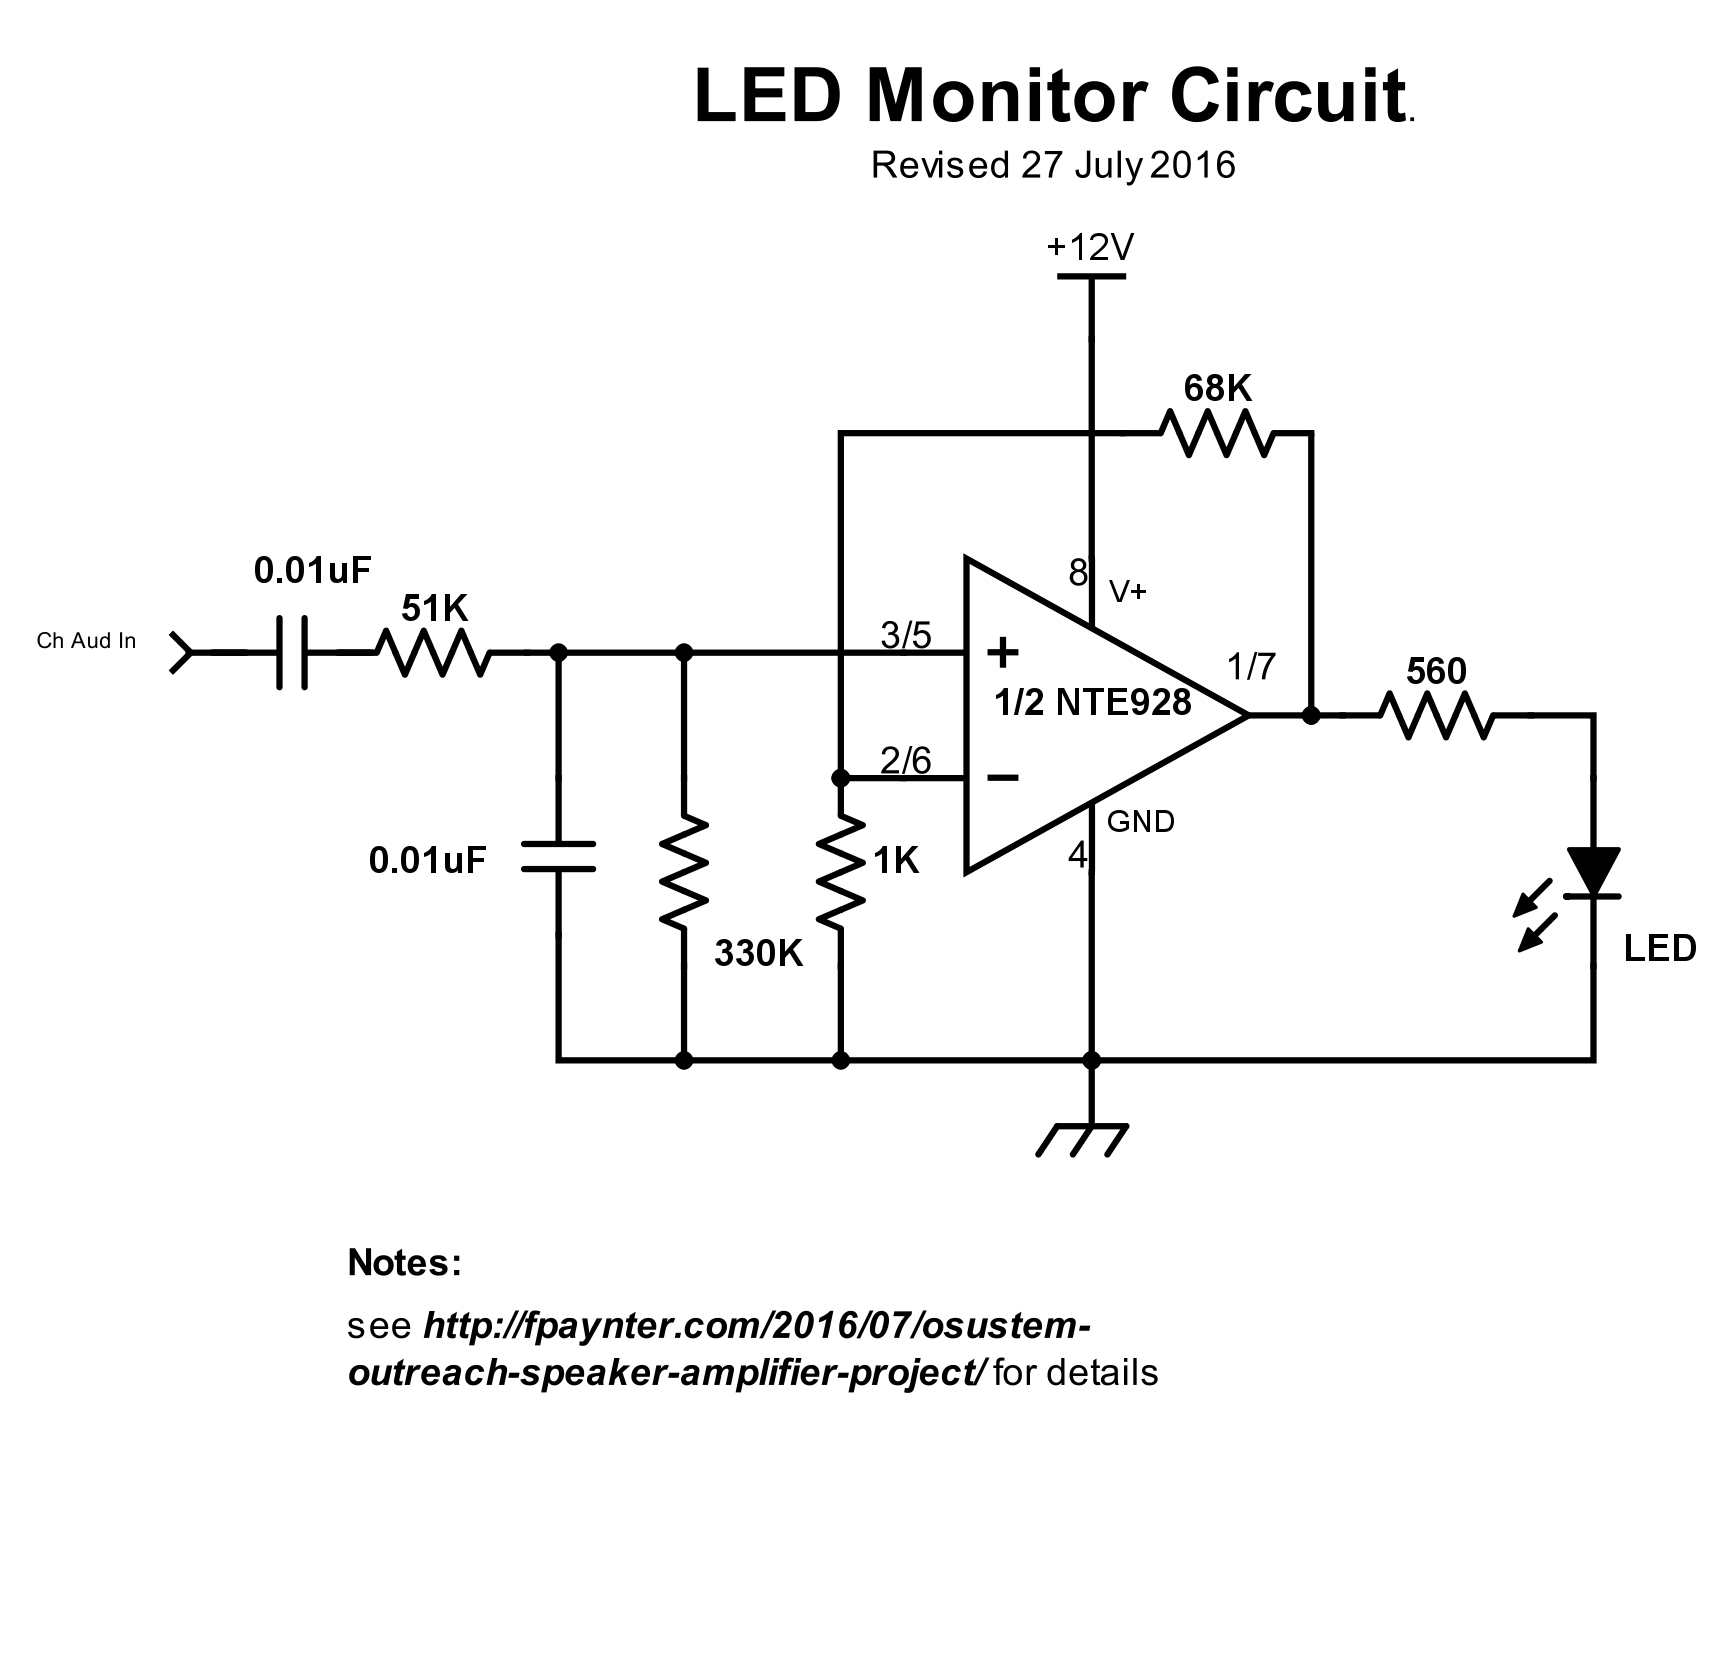 Revised LED monitor schematic - one of two channels shown.